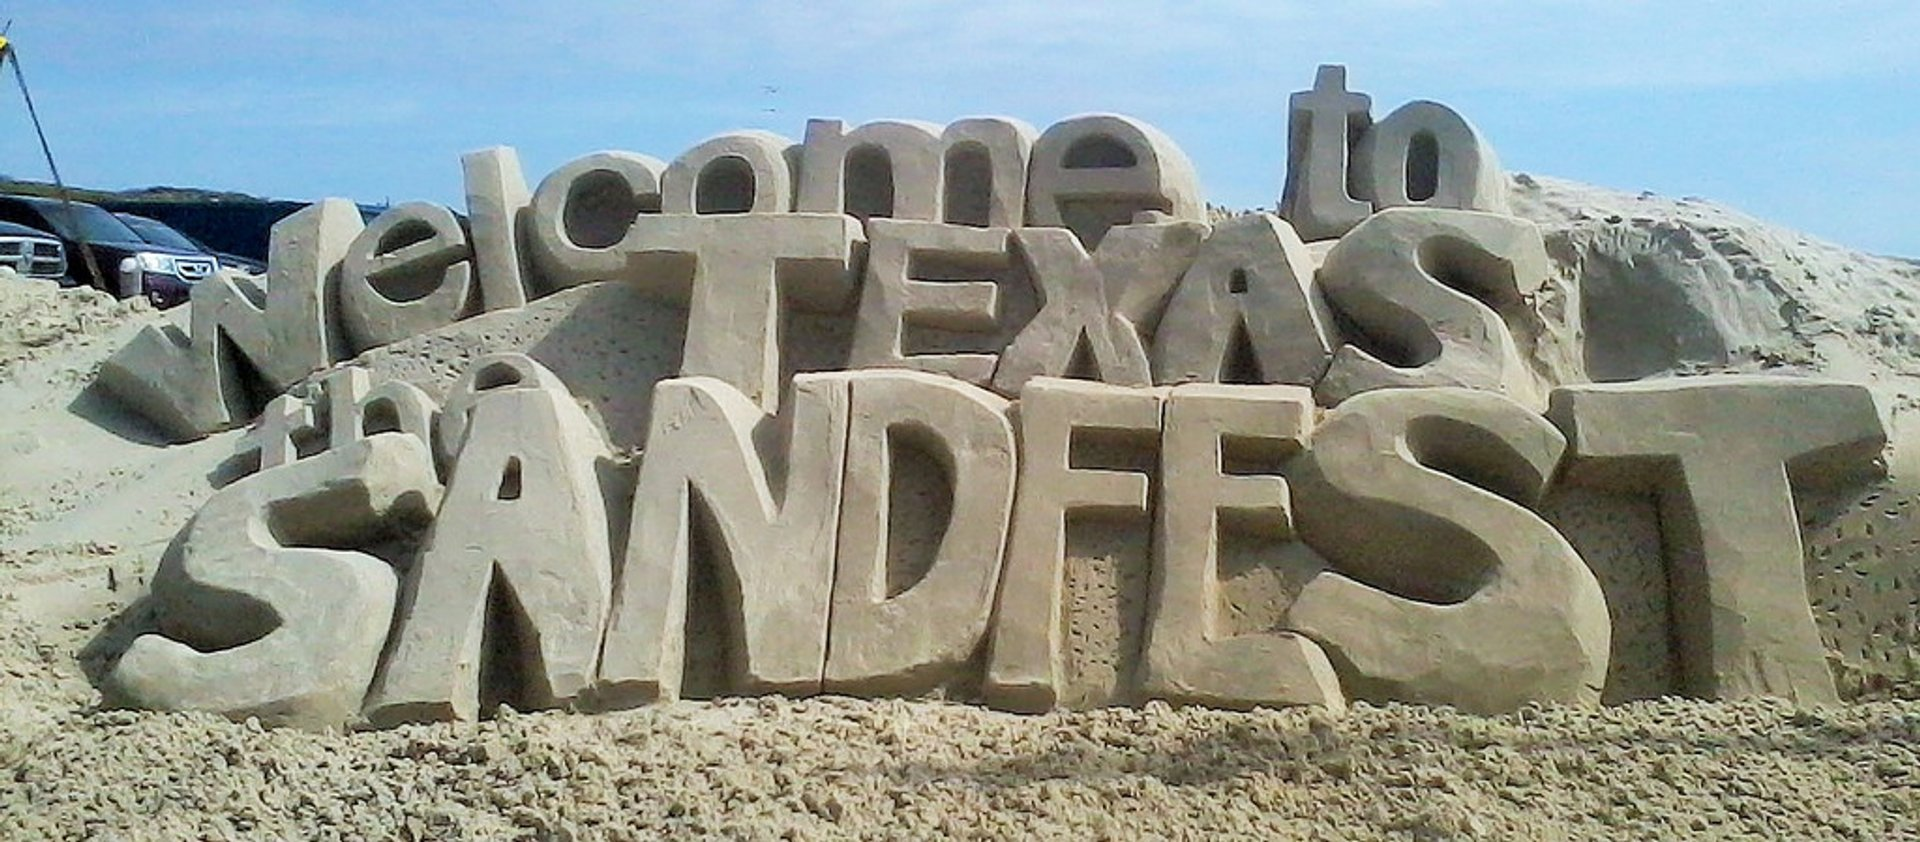 Texas SandFest in Texas - Best Time